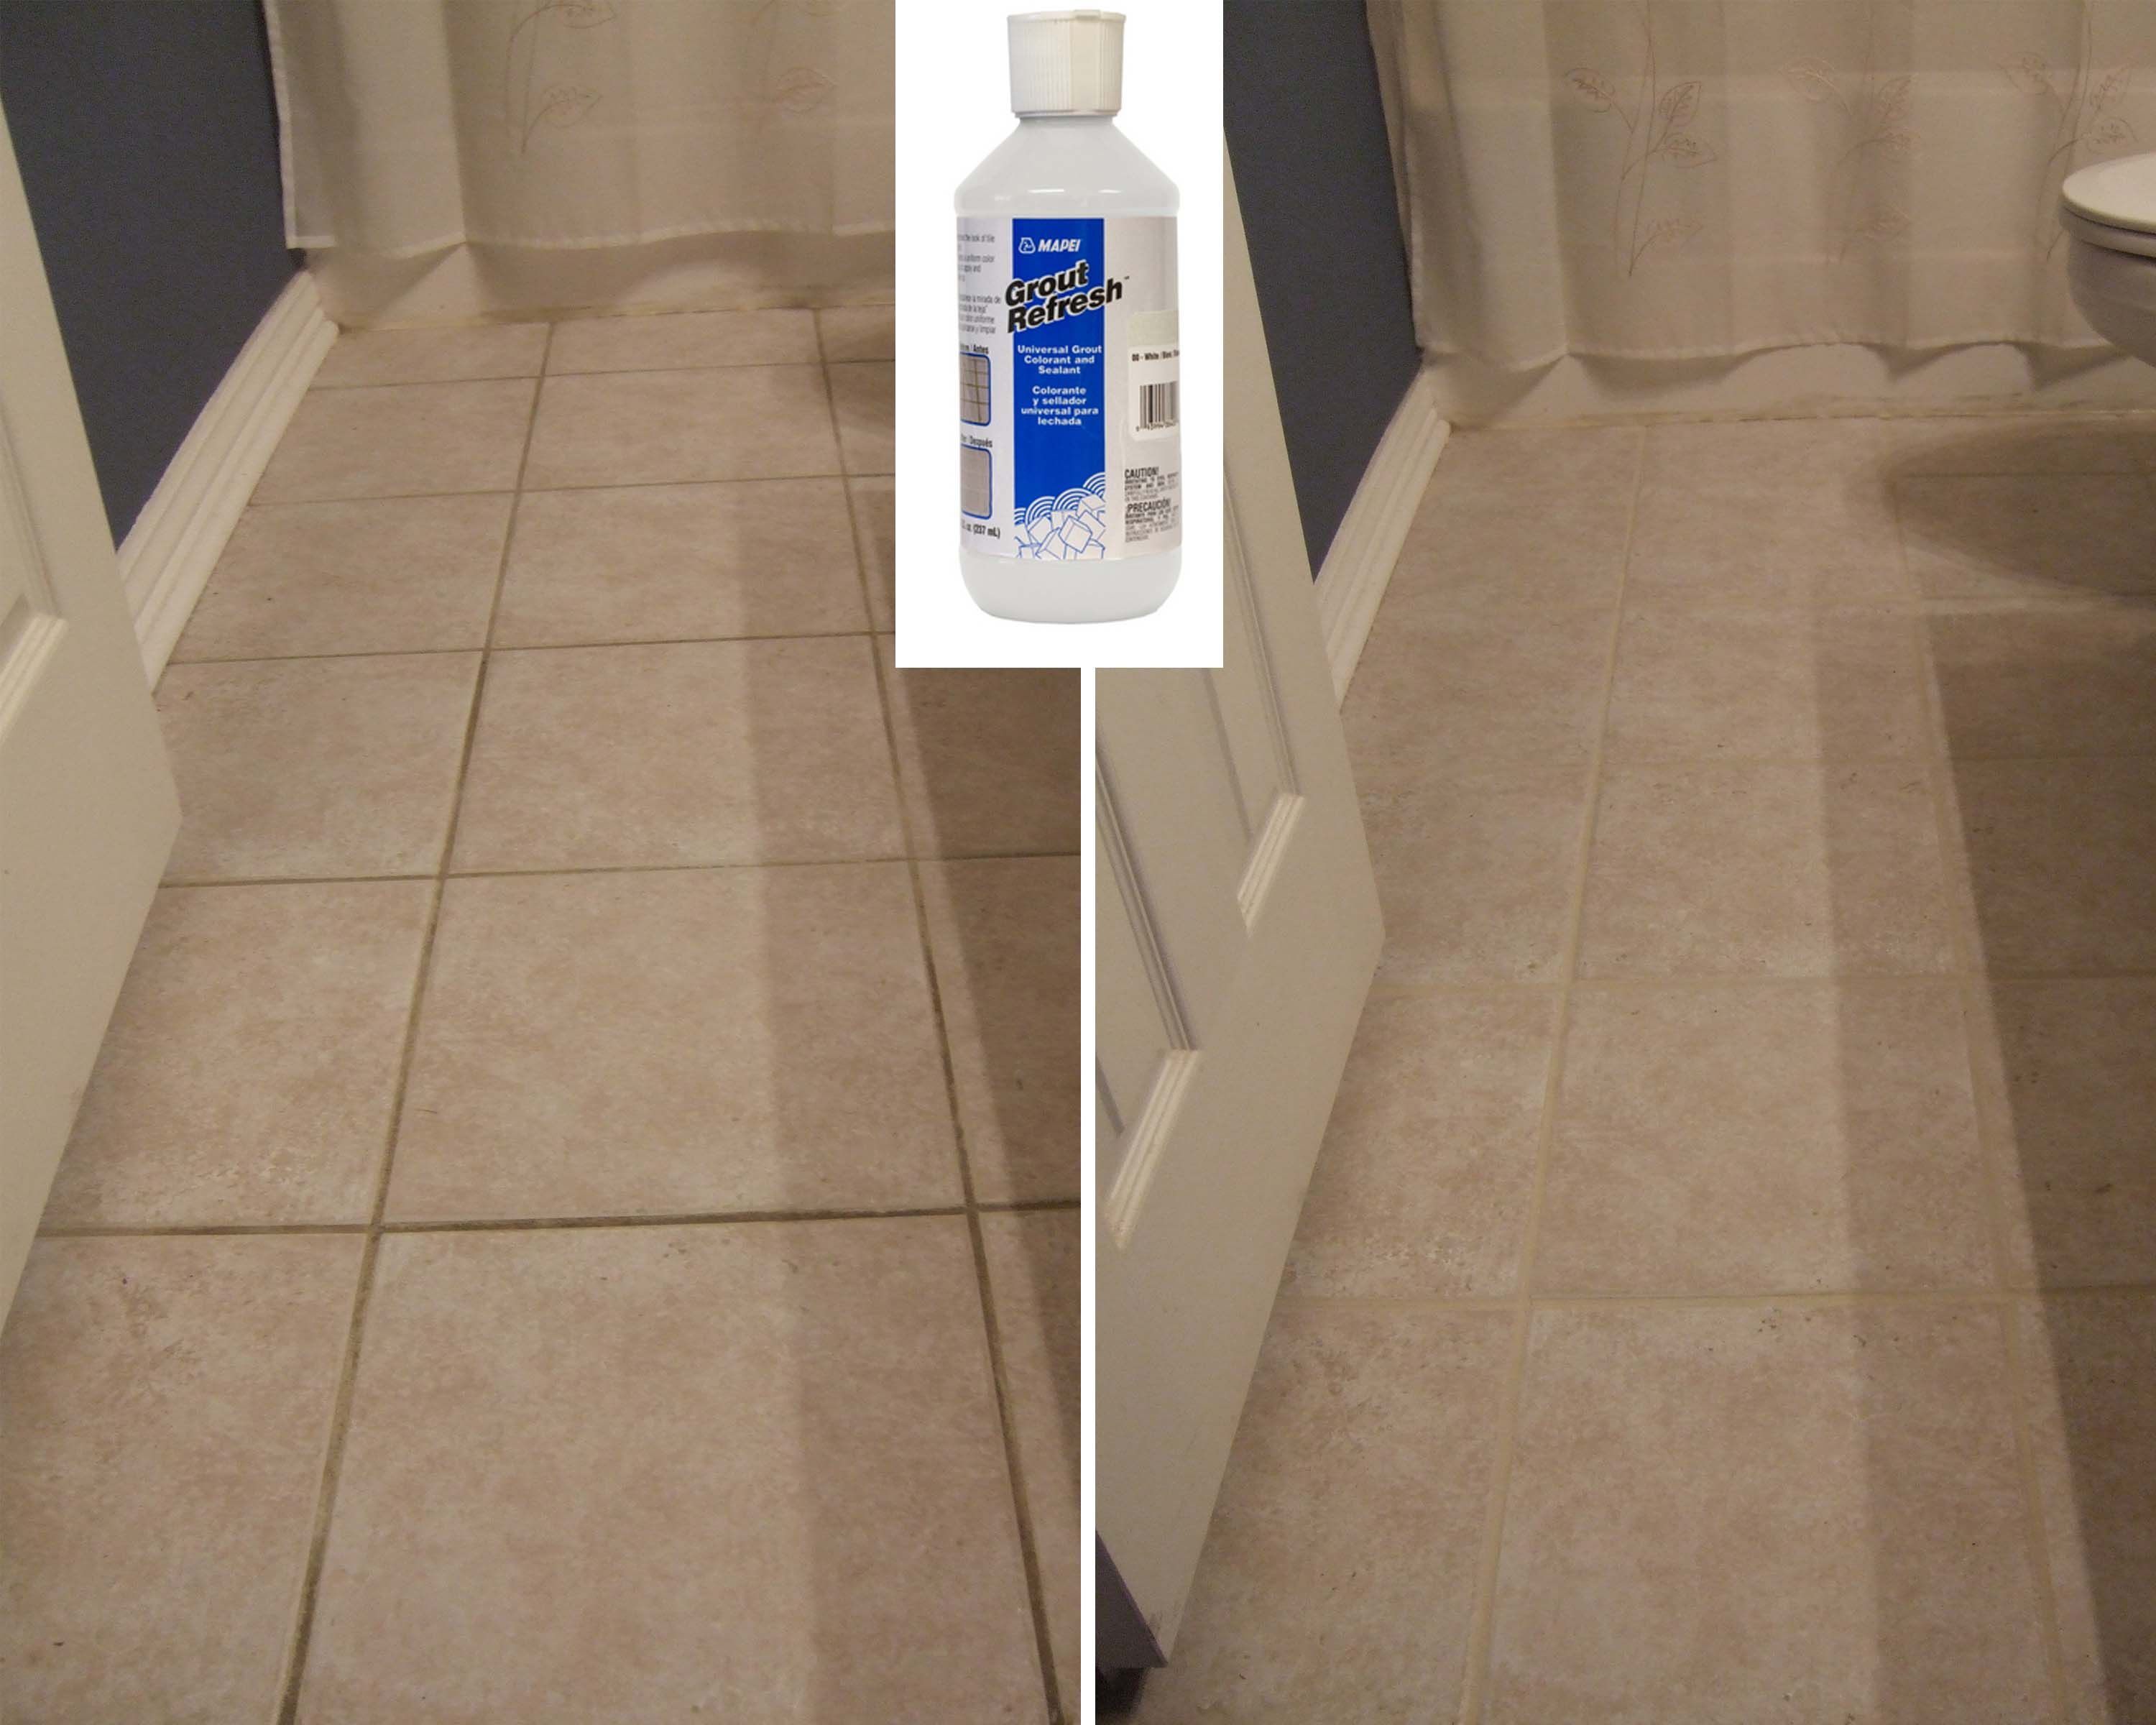 How to clean grout with peroxide baking soda grout clean household dailygadgetfo Choice Image